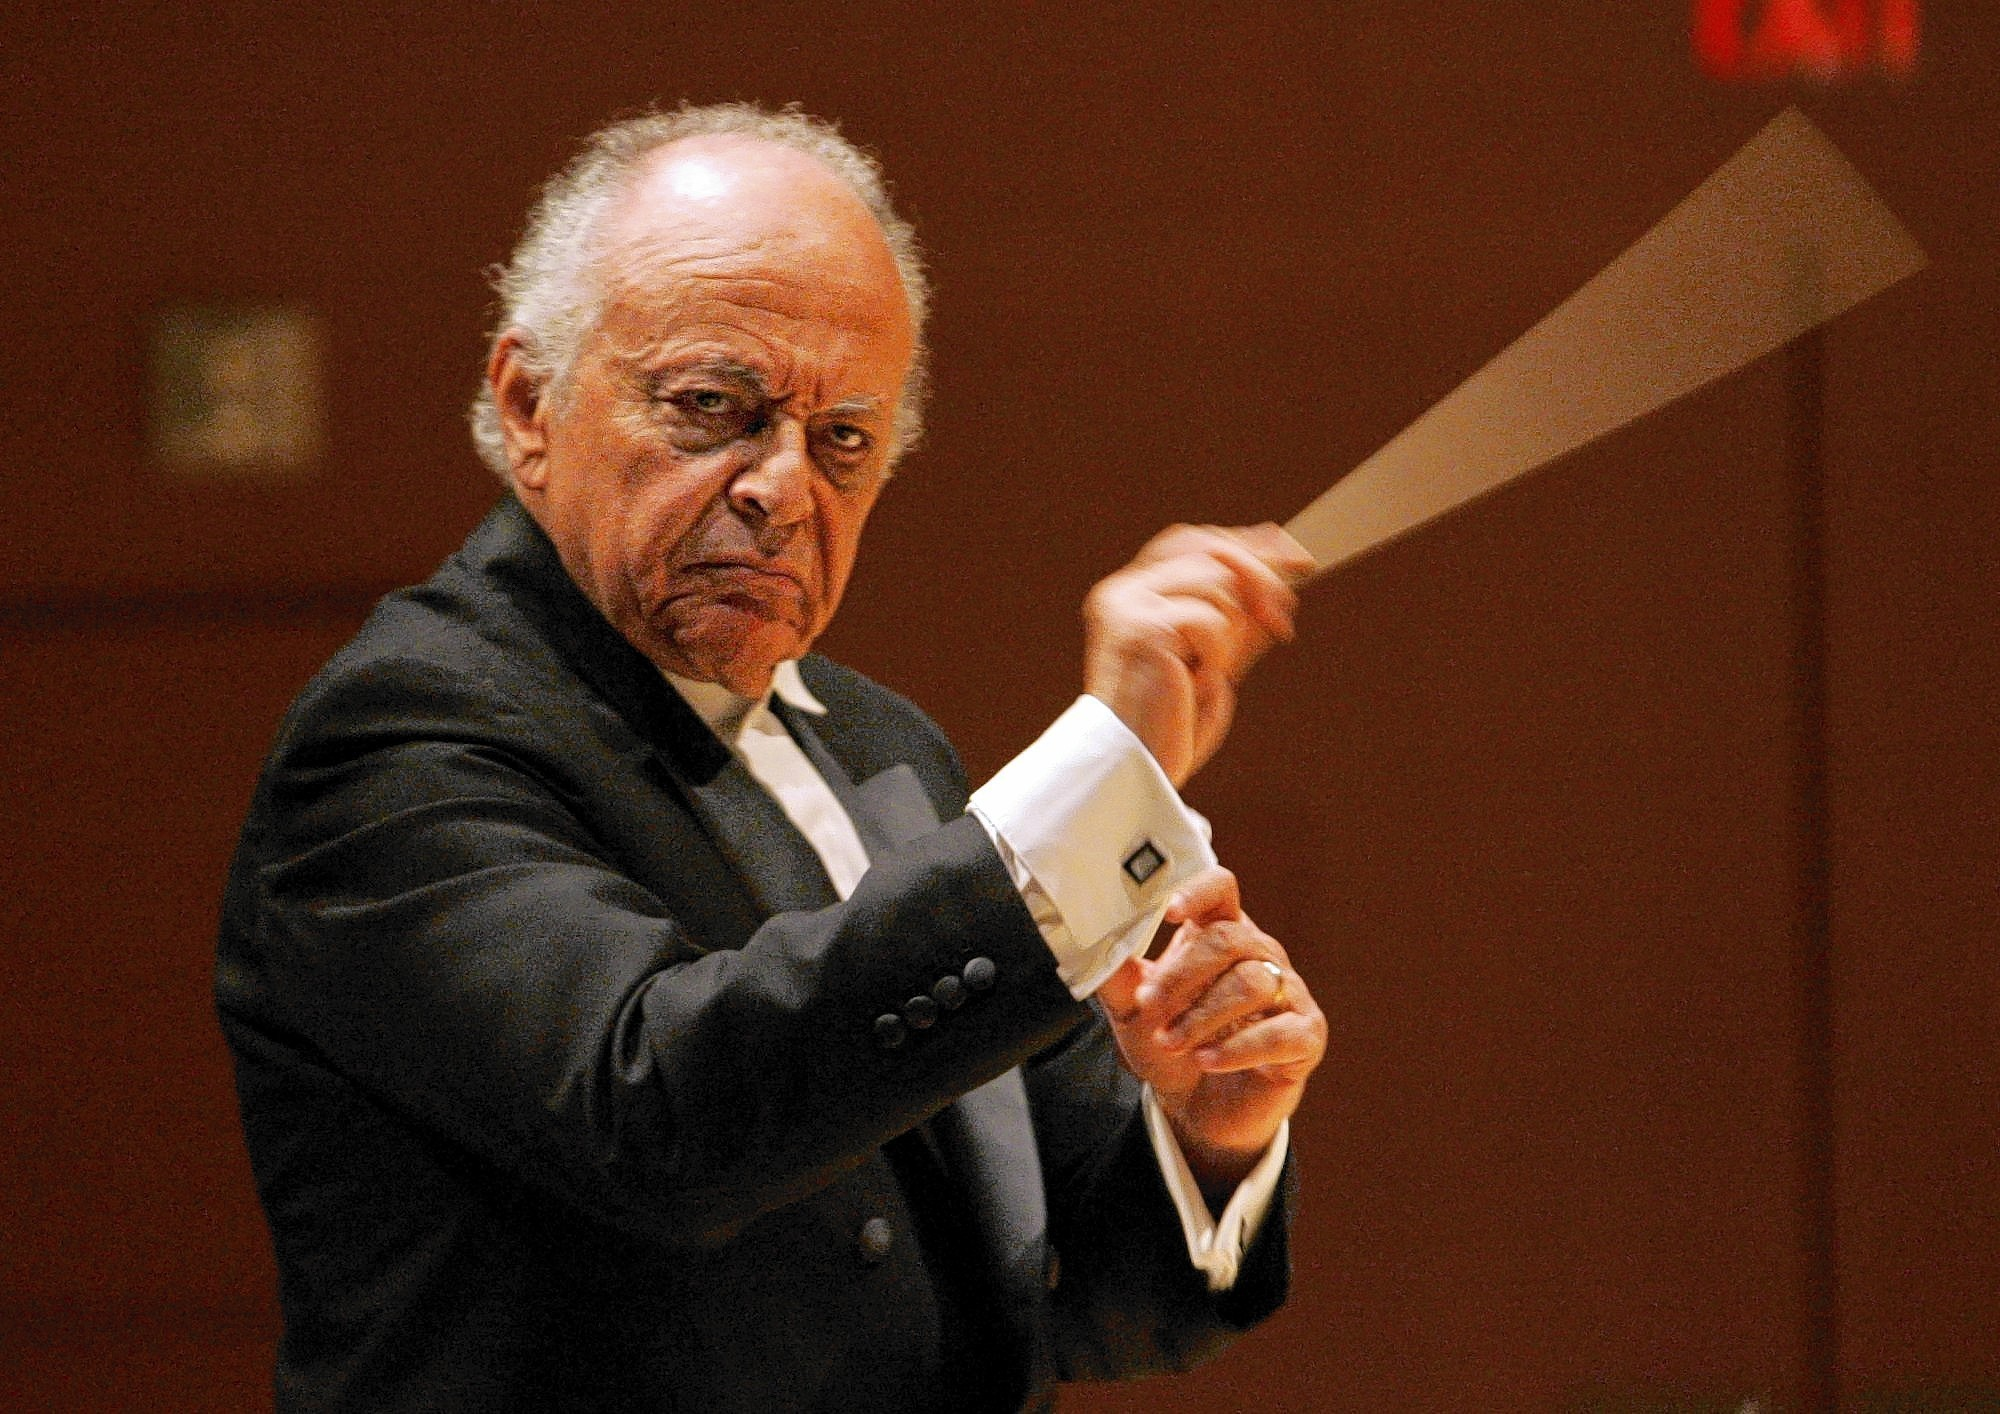 Beethoven Lorin Maazel Israel Philharmonic Orchestra Beethoven Overtures